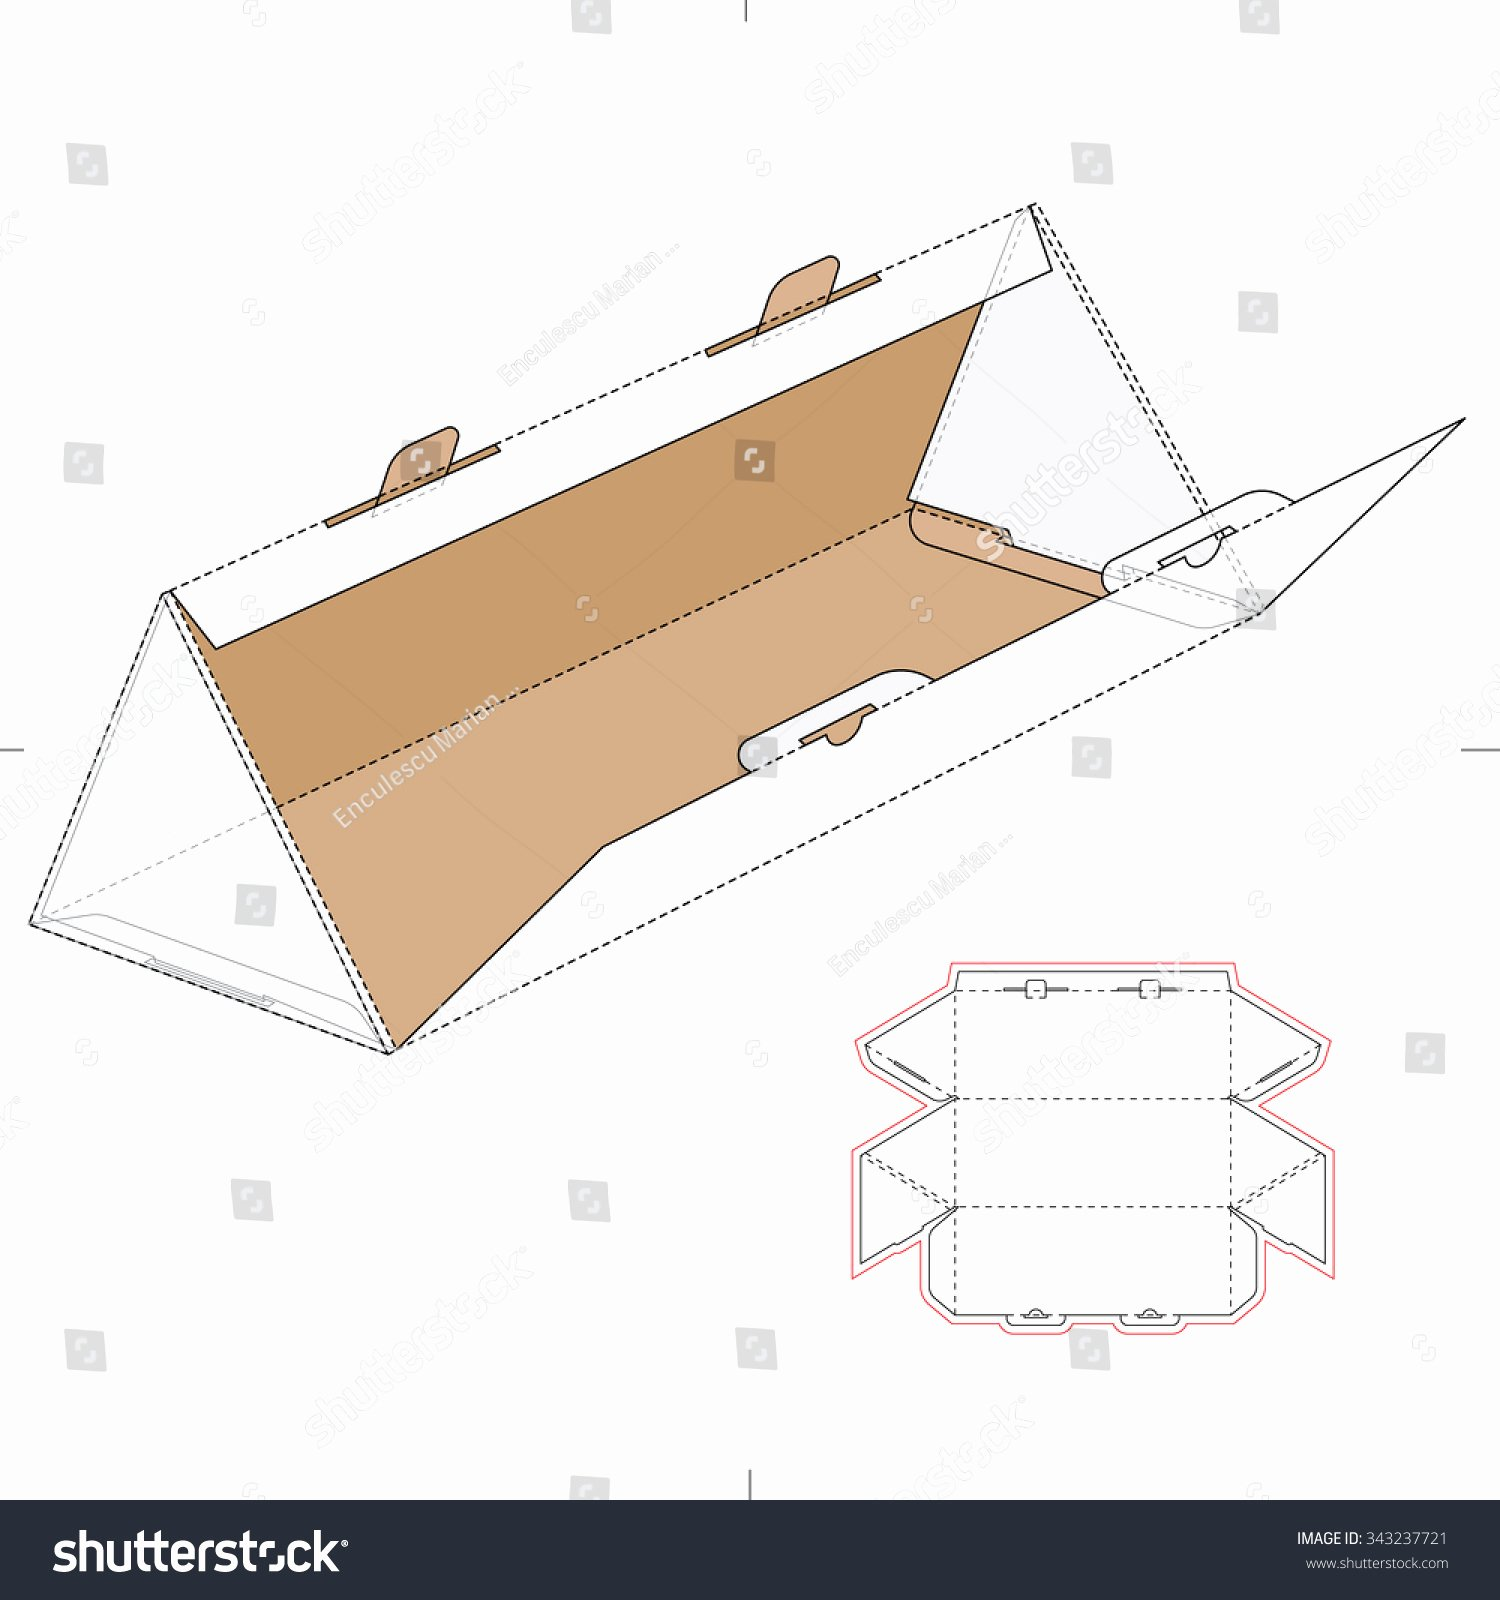 Die Cut Box Template Unique Triangular Box with Die Cut Template and Layout Stock